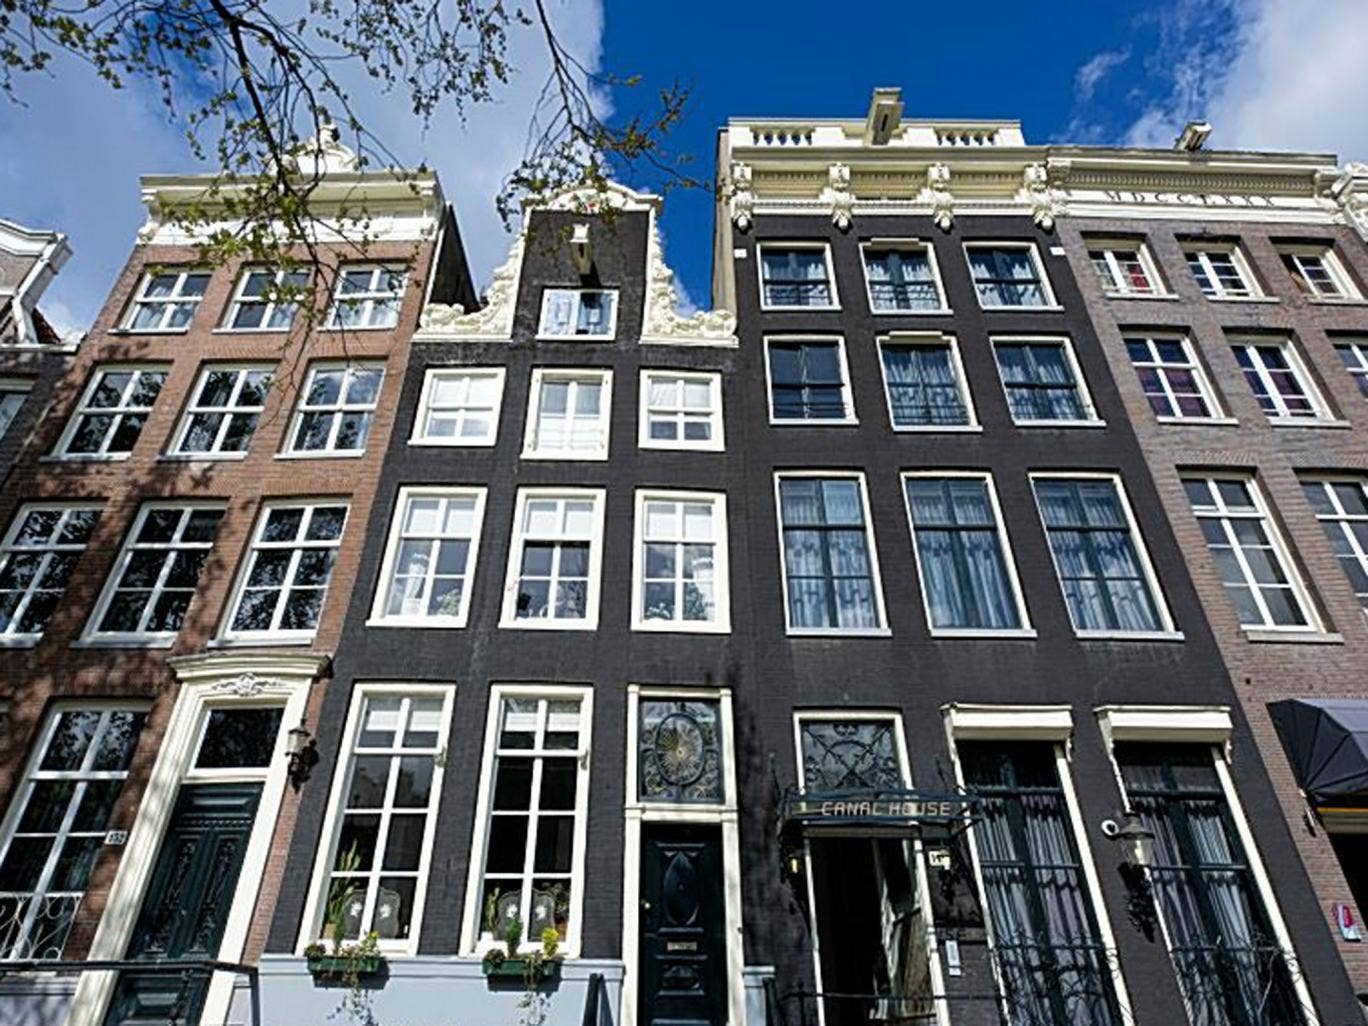 Tall order: impressive canal-side buildings in Amsterdam